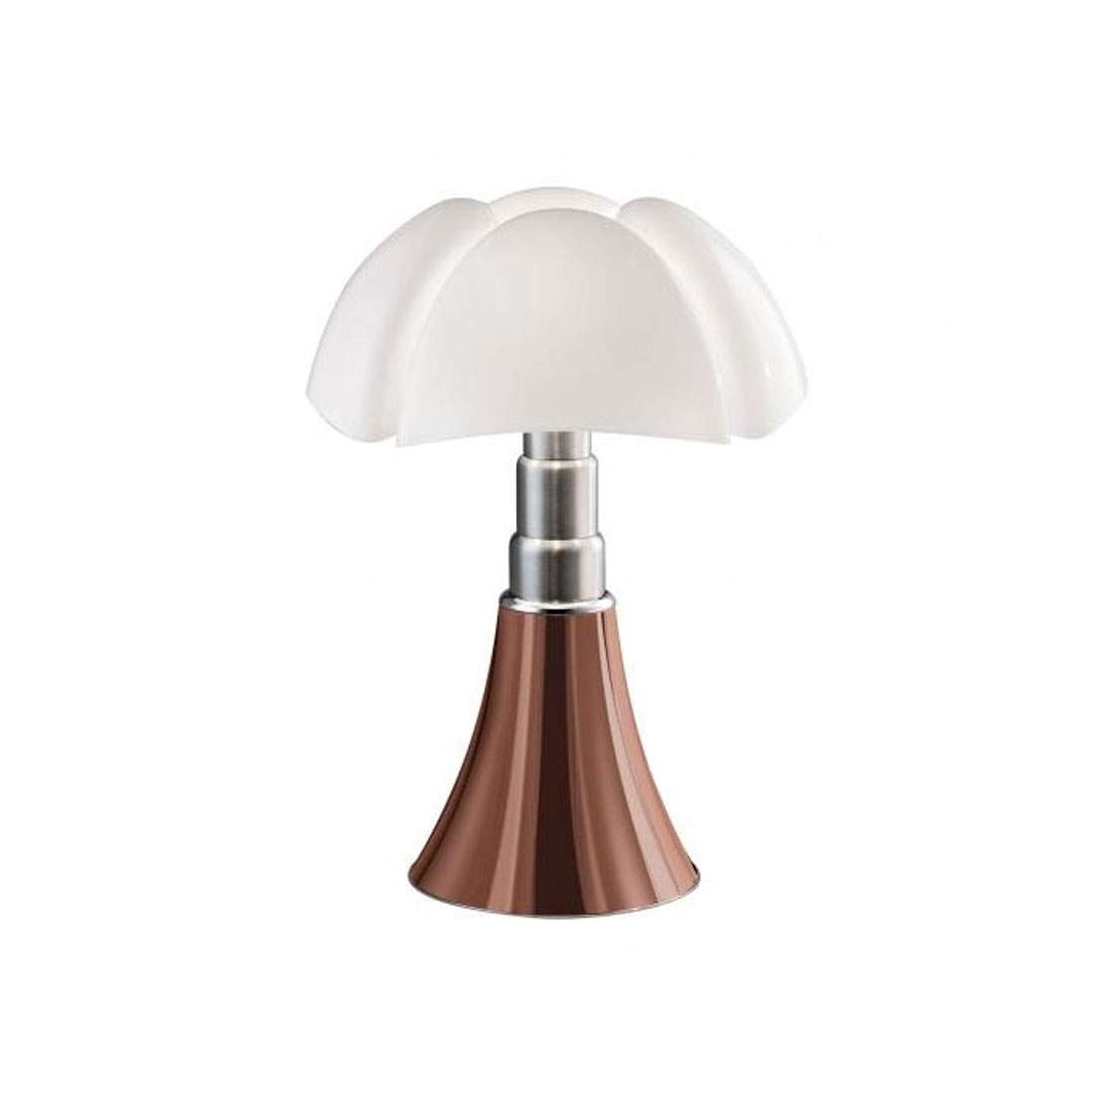 lampe poser martinelli luce minipipistrello led lampes. Black Bedroom Furniture Sets. Home Design Ideas